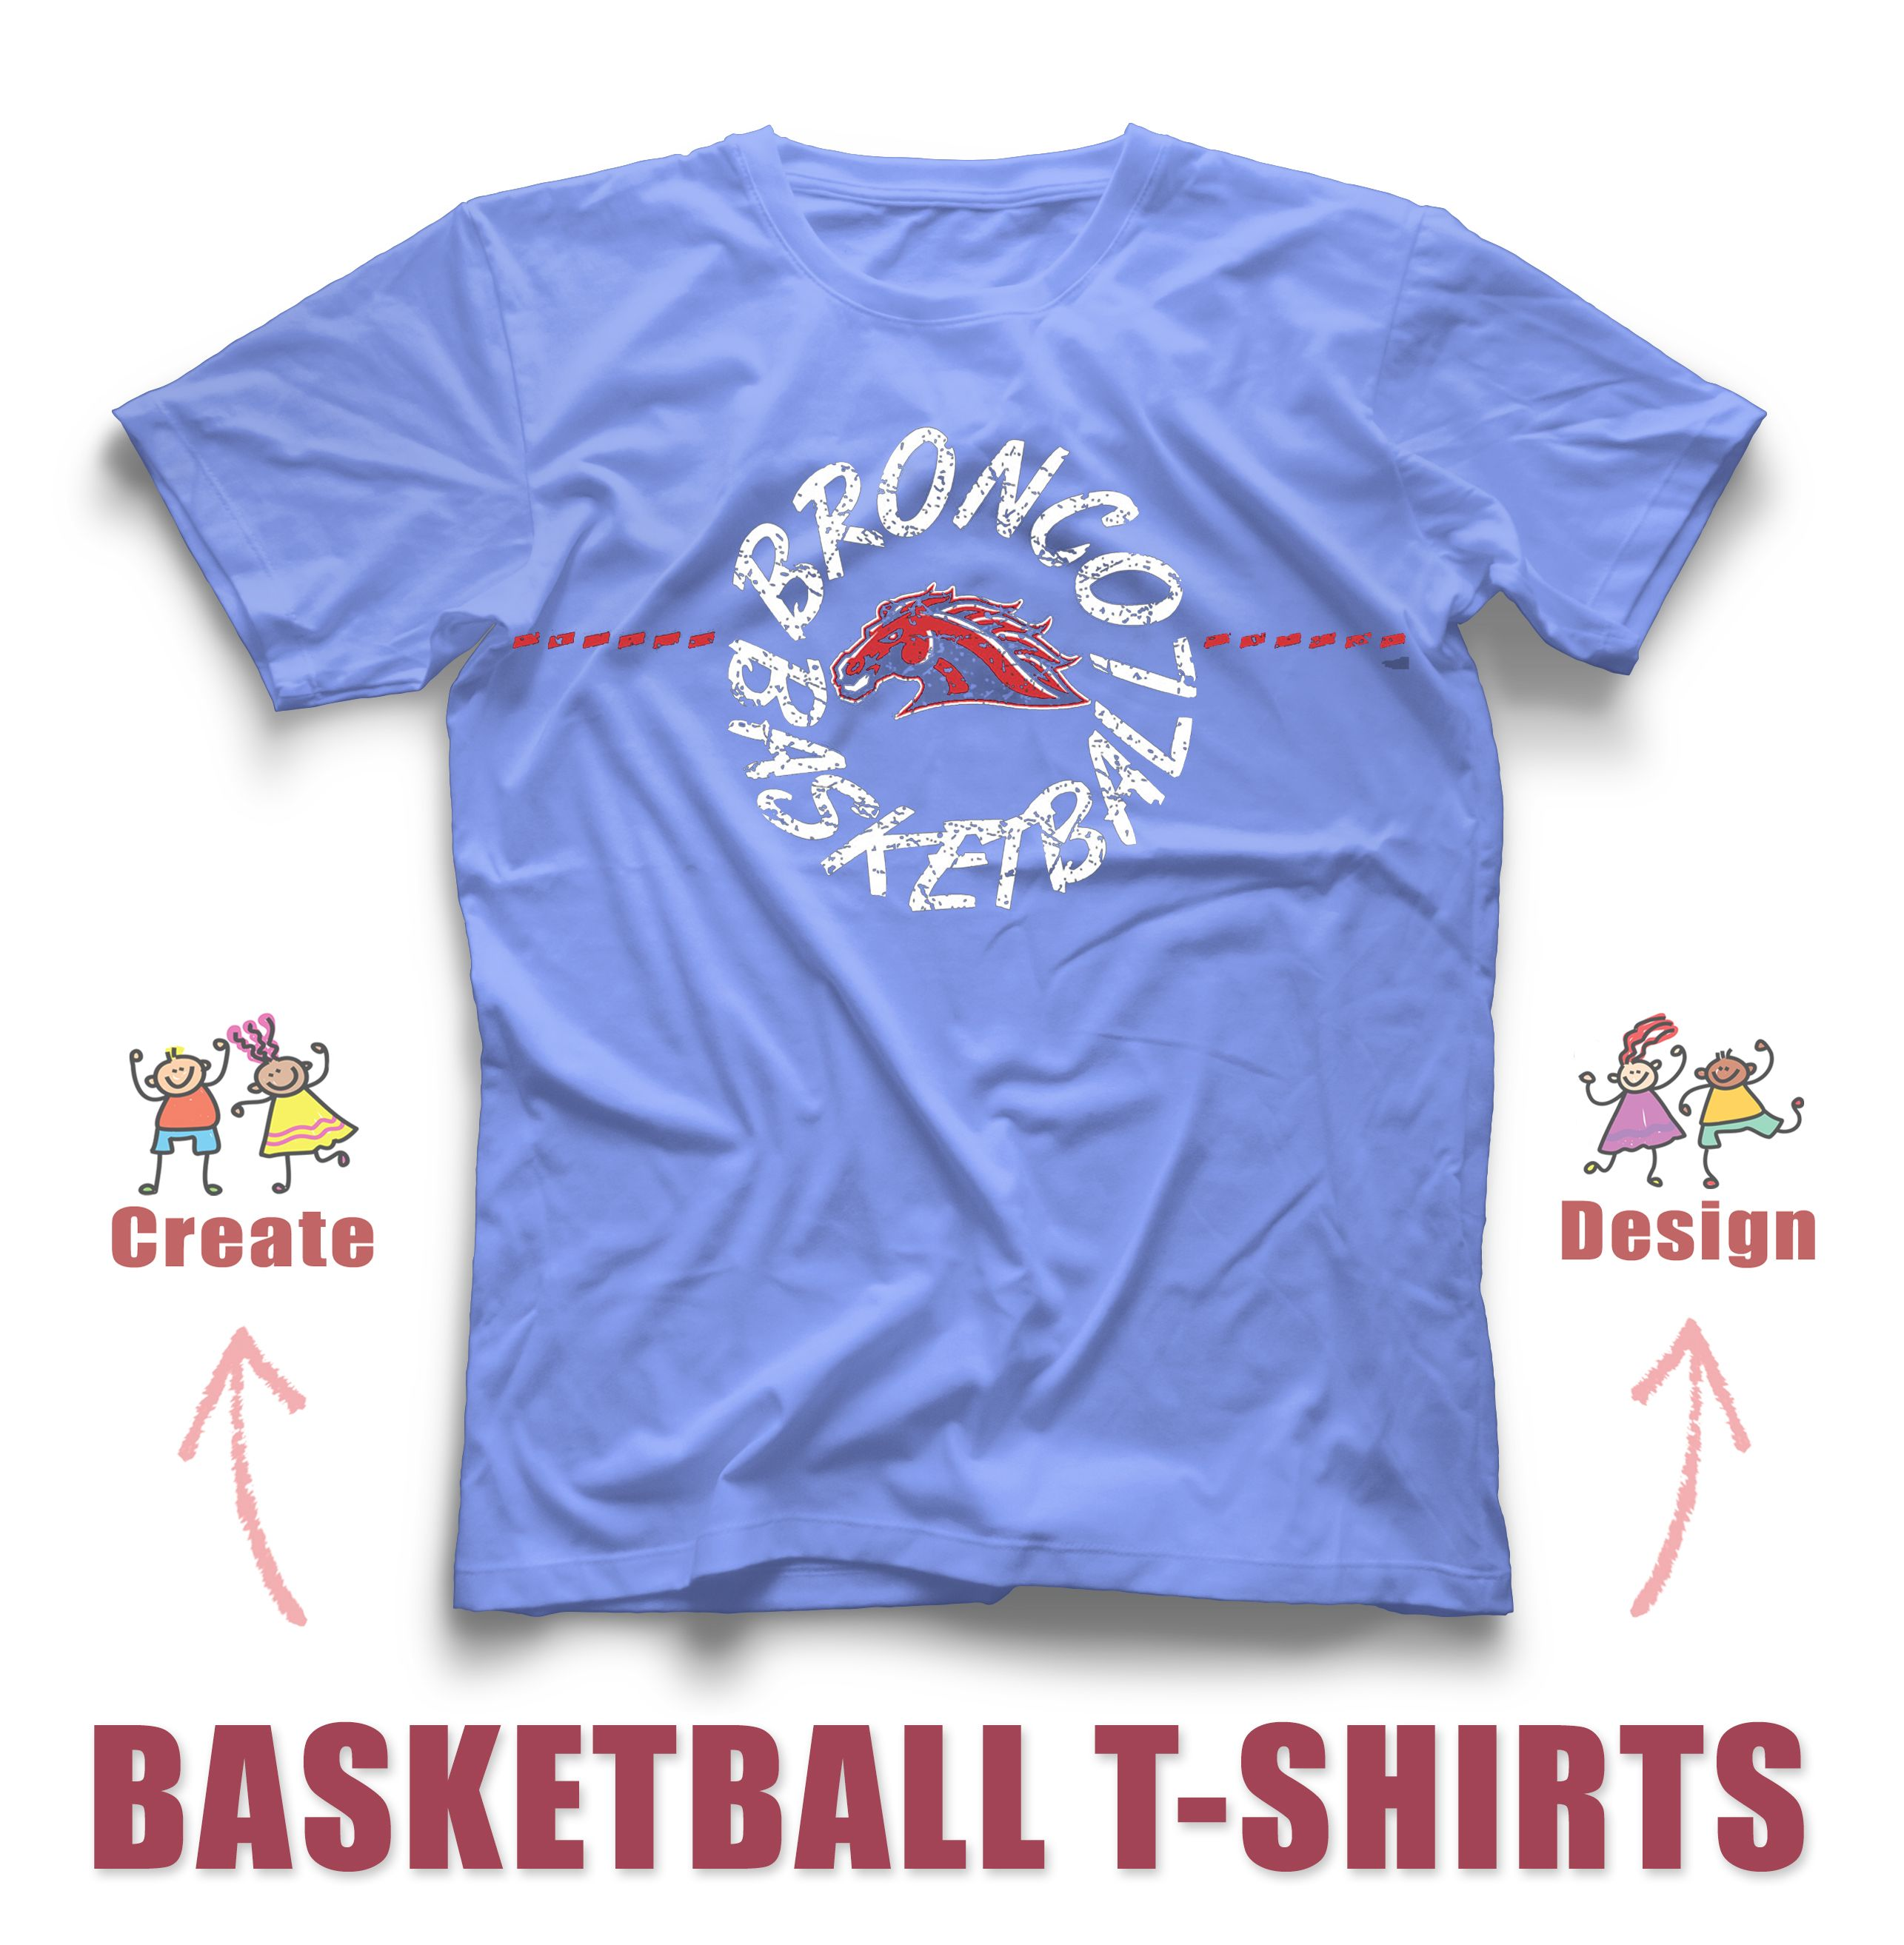 Design tshirt online free shipping - Awesome Basketball Custom T Shirt Design And Create Online Now Easy Fun